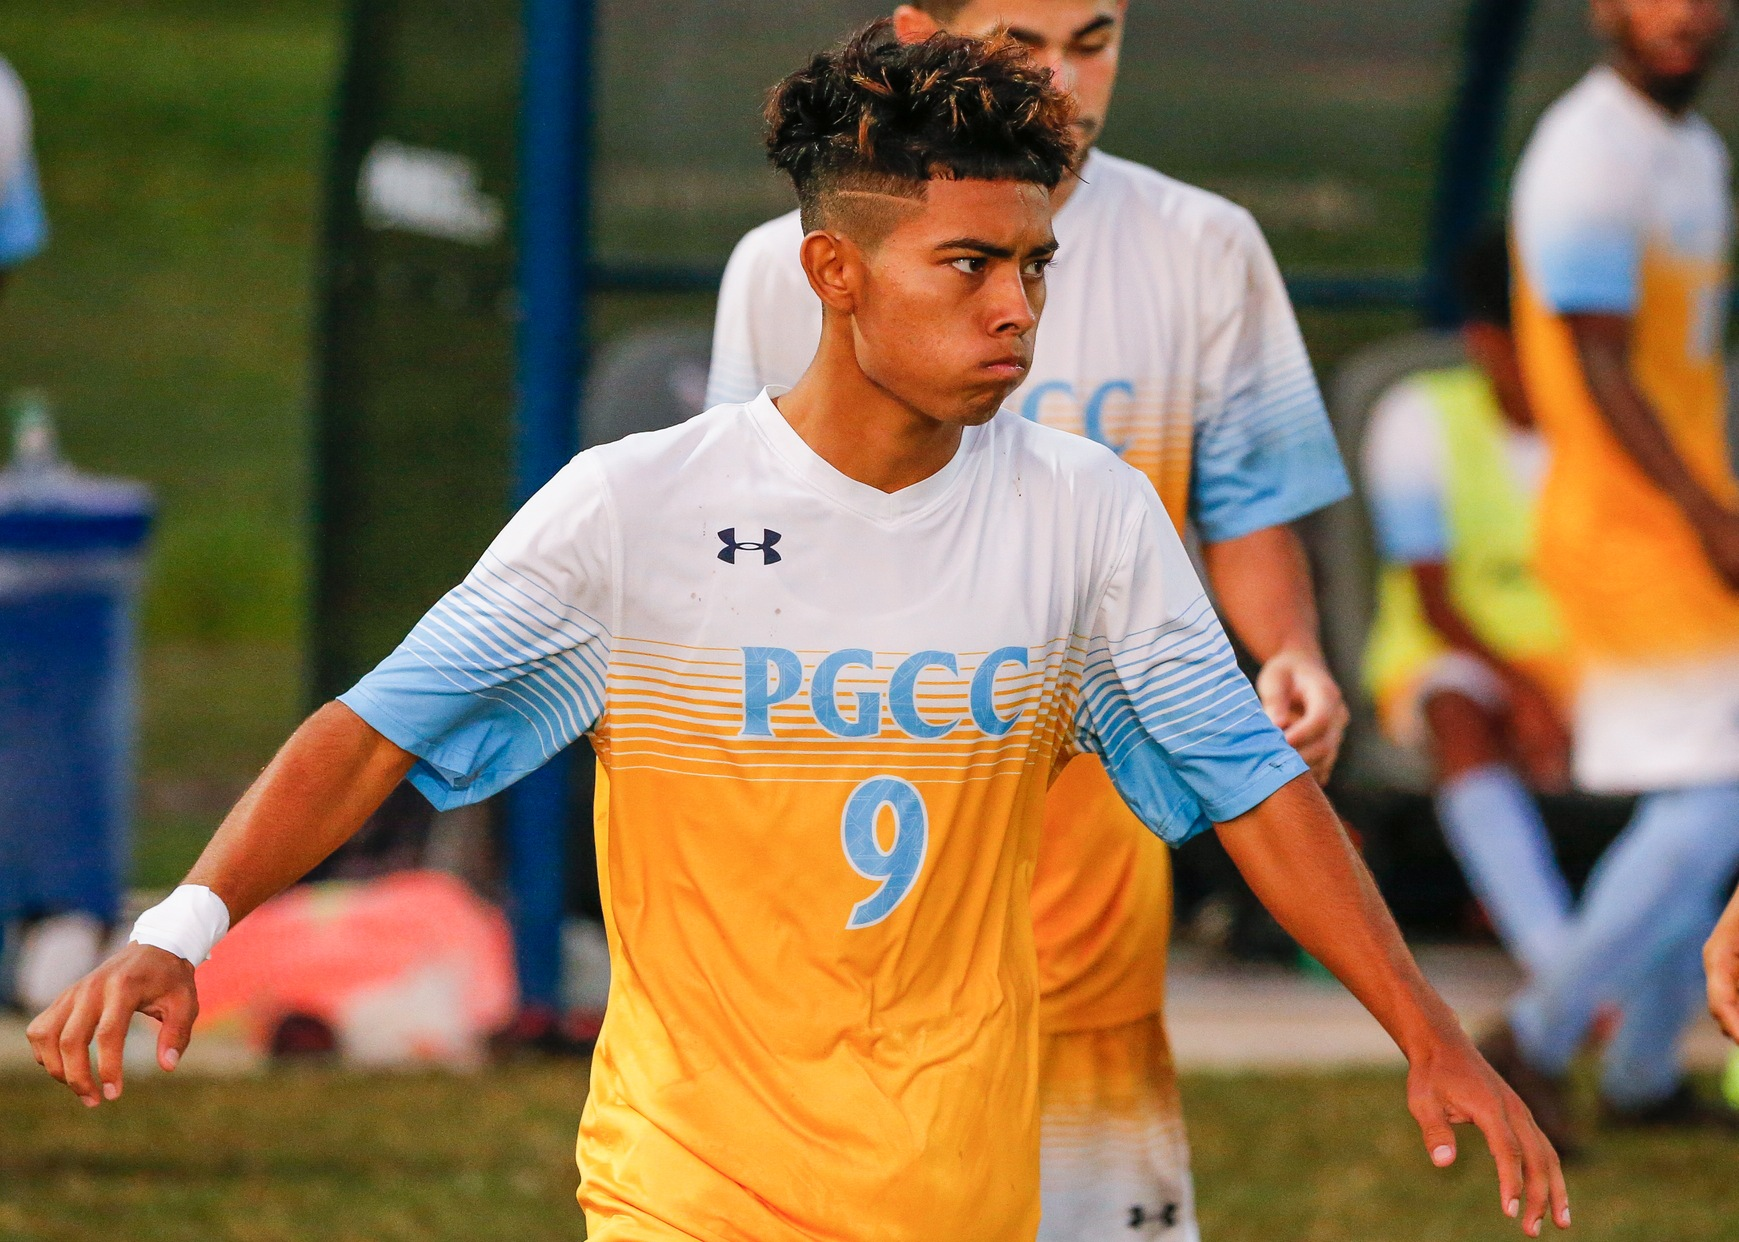 Men's Soccer Sits Atop MD JUCO Rankings